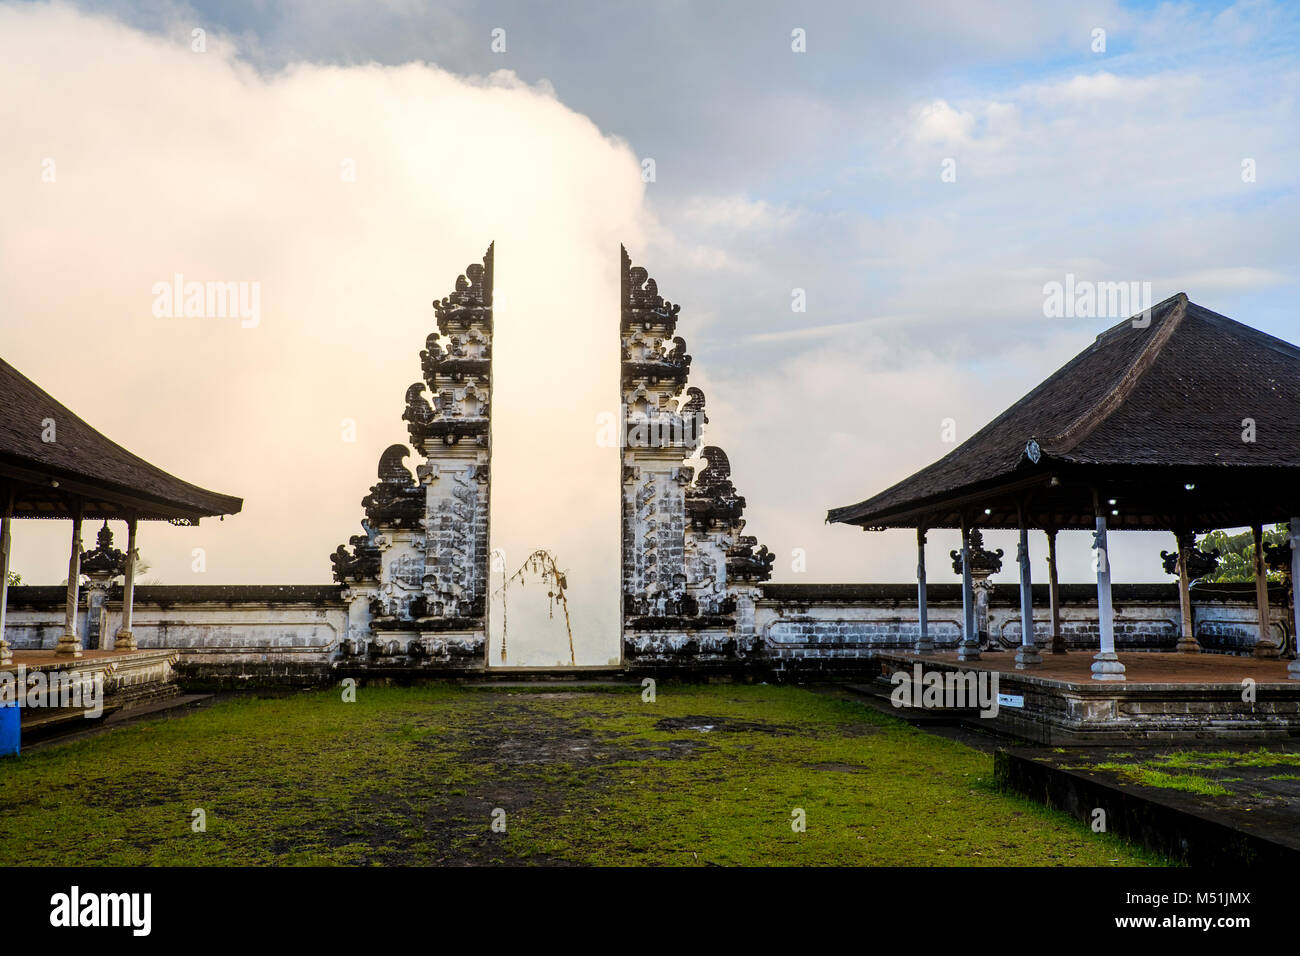 Clouds hinder the view through the split gateway ('candi bentar') of the outer sanctum, Pura Lempuyang temple, - Stock Image